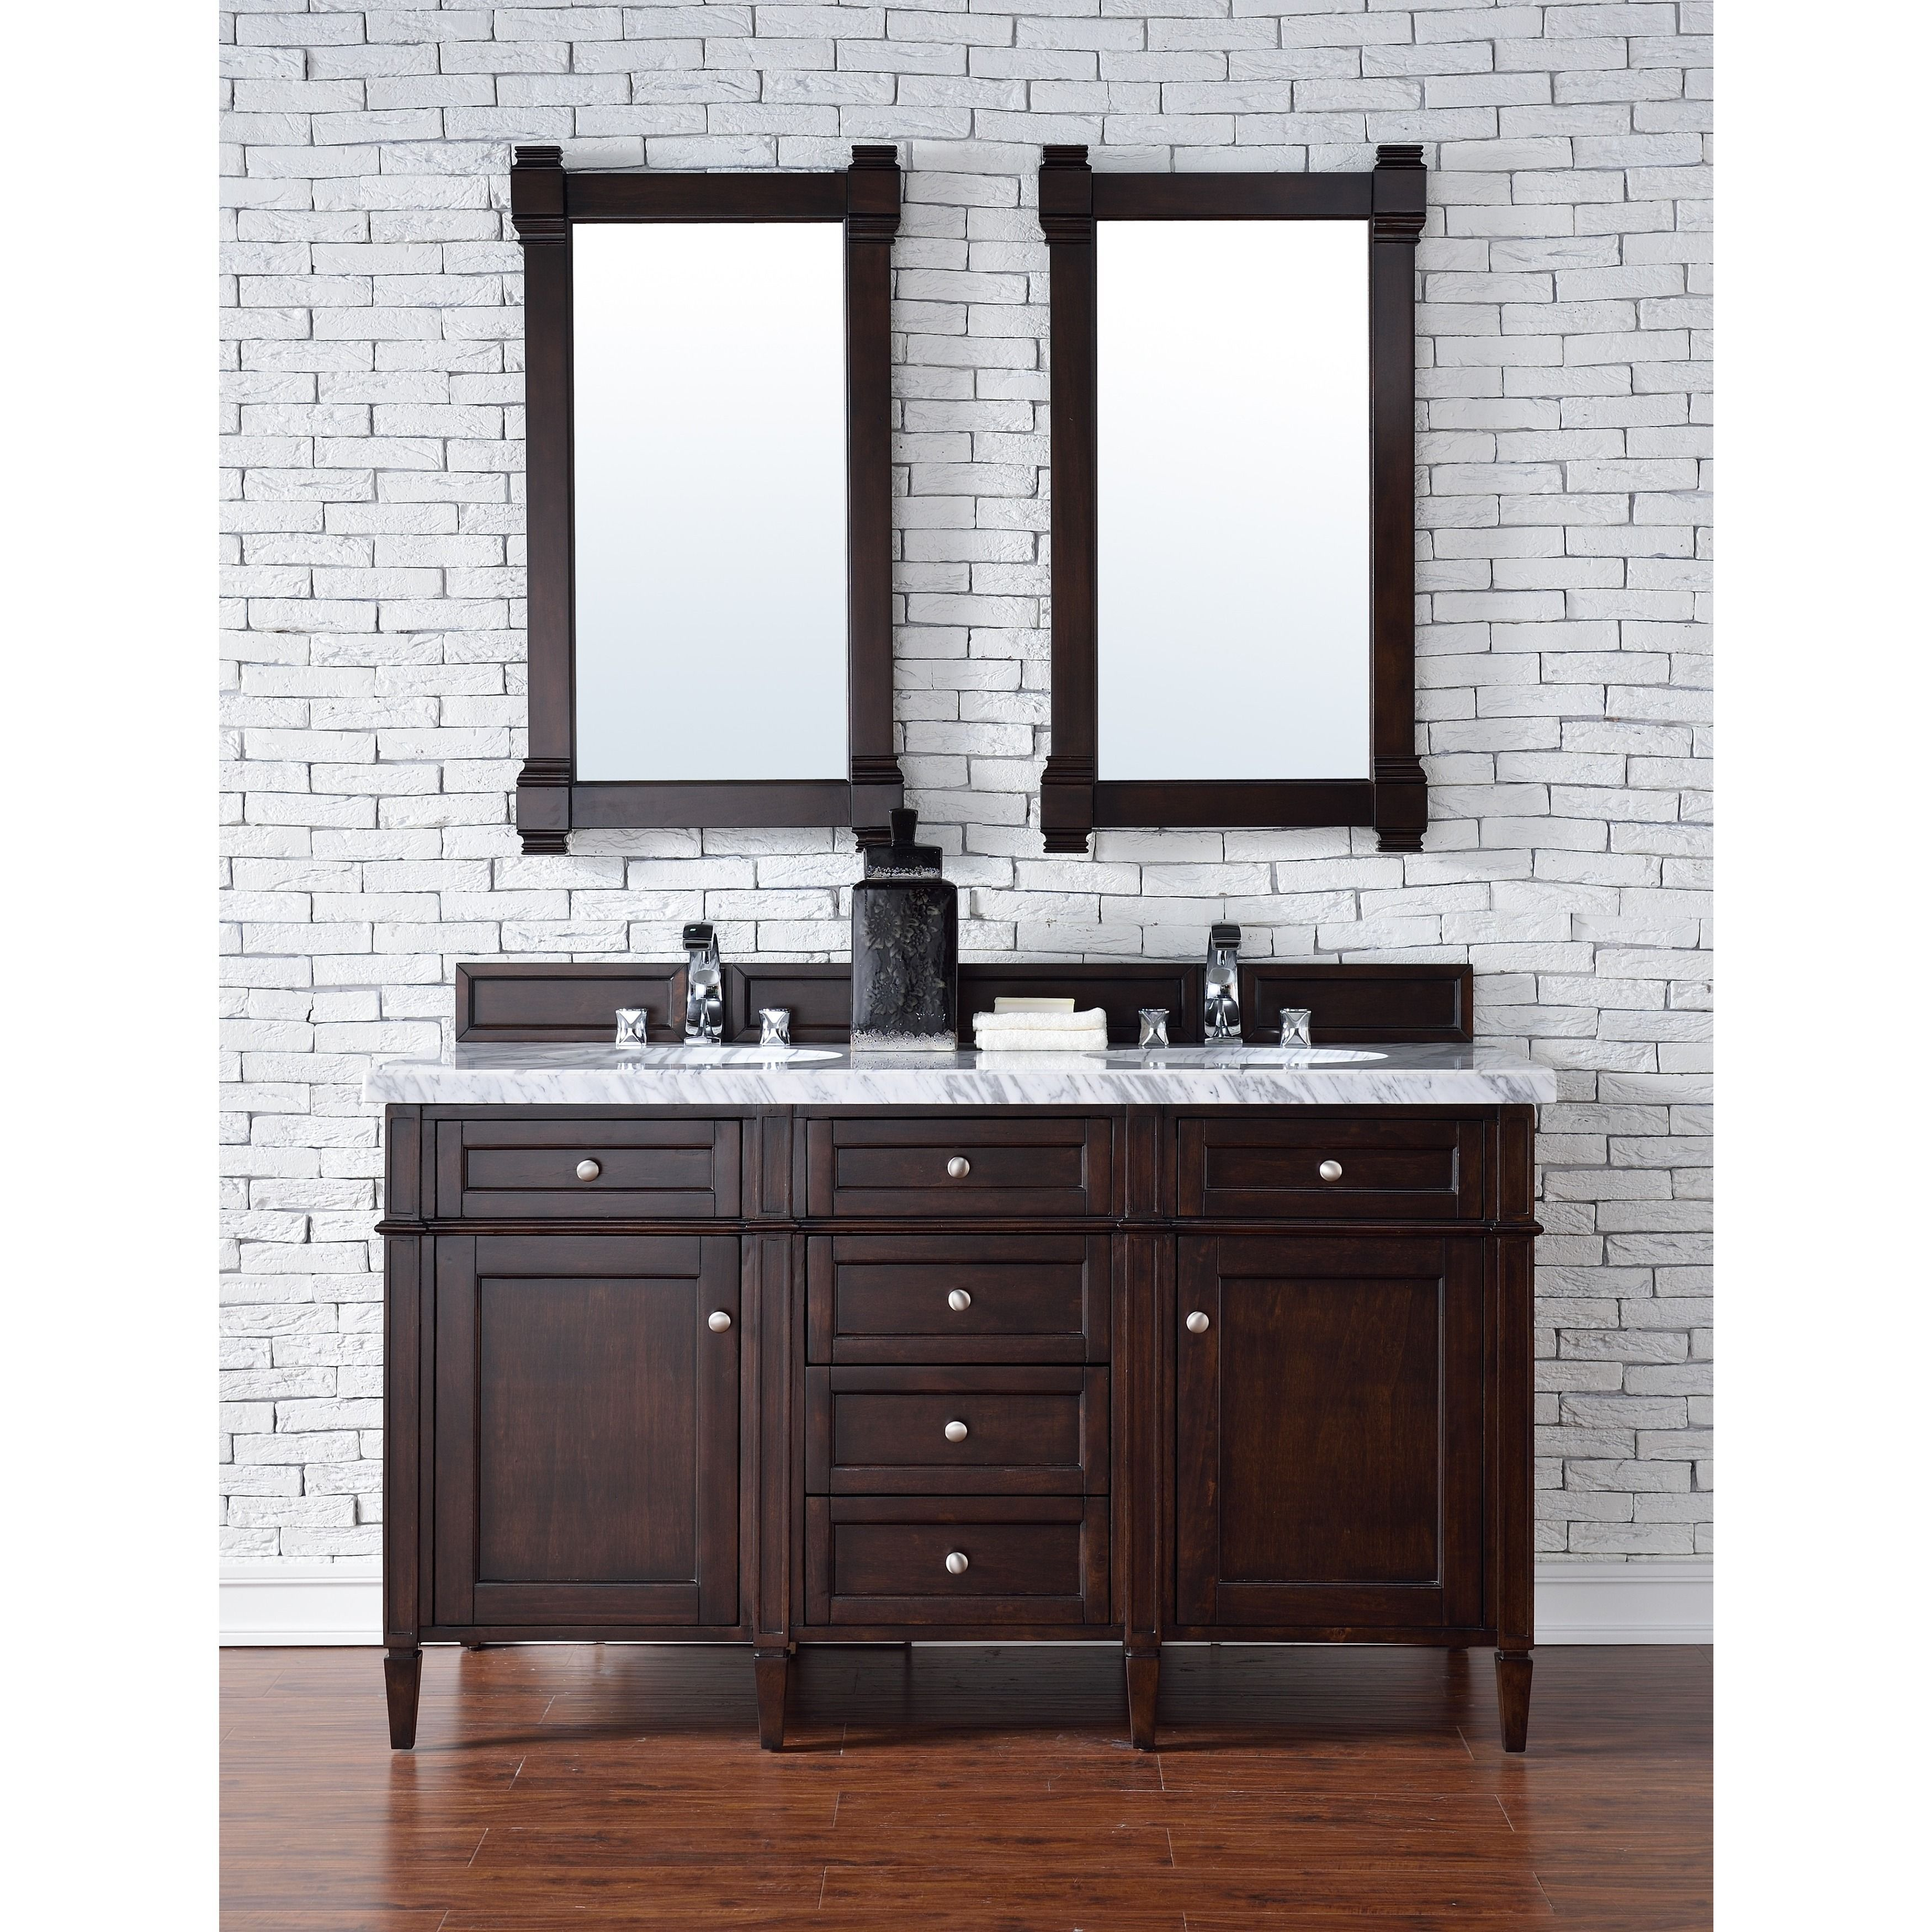 This Brittany 60 Inch Burnished Mahogany Double Vanity By James